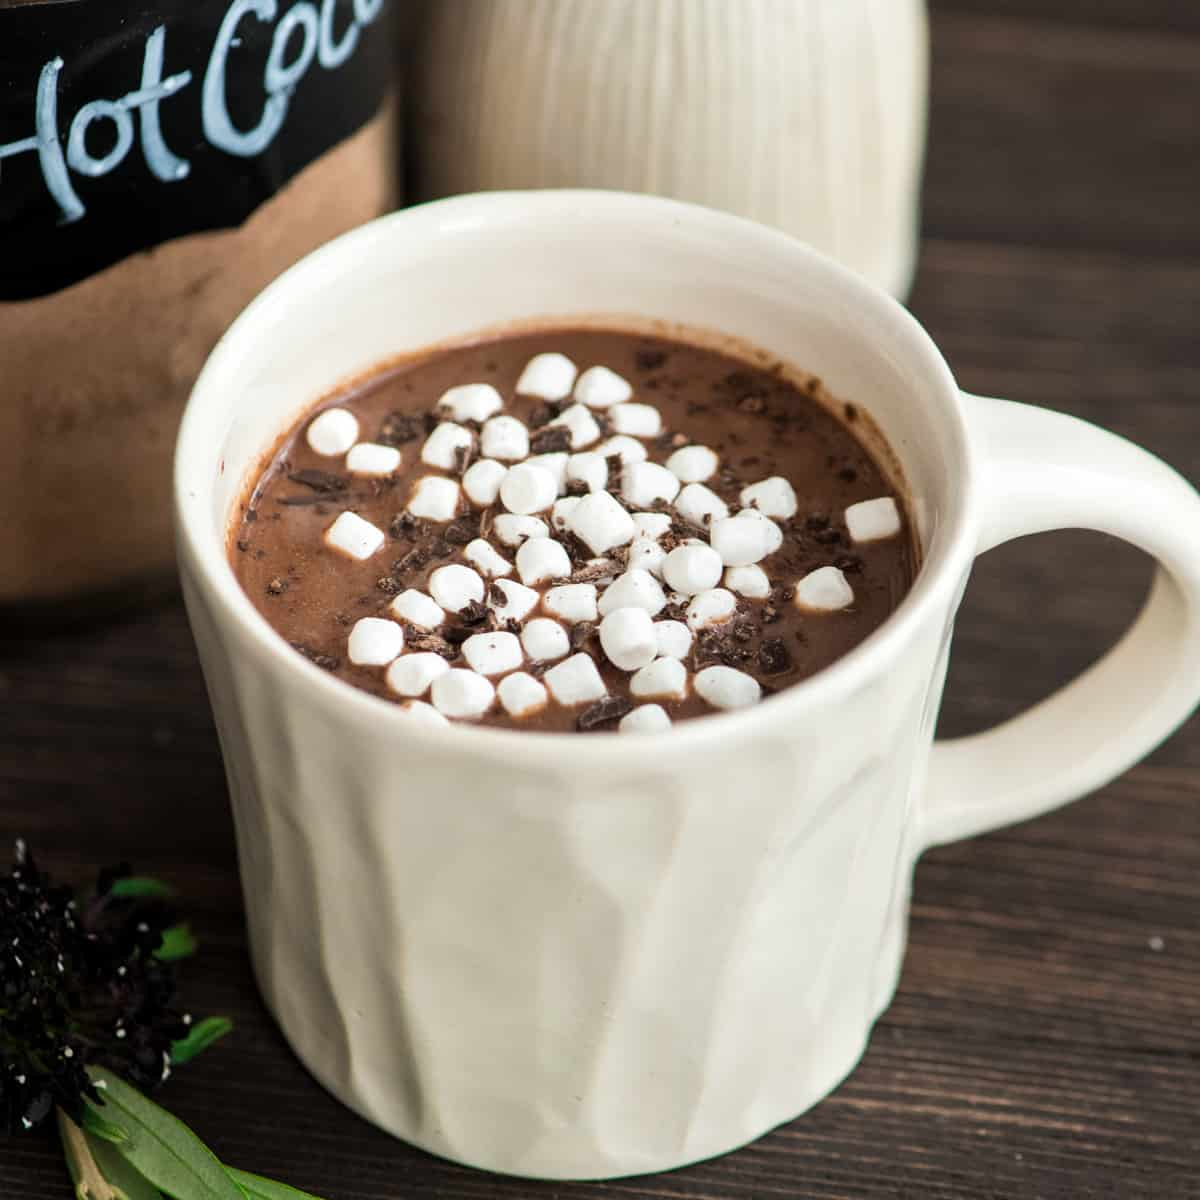 mug of hot cocoa made with Dairy-Free Hot Chocolate Mix which is in a glass jar in the background